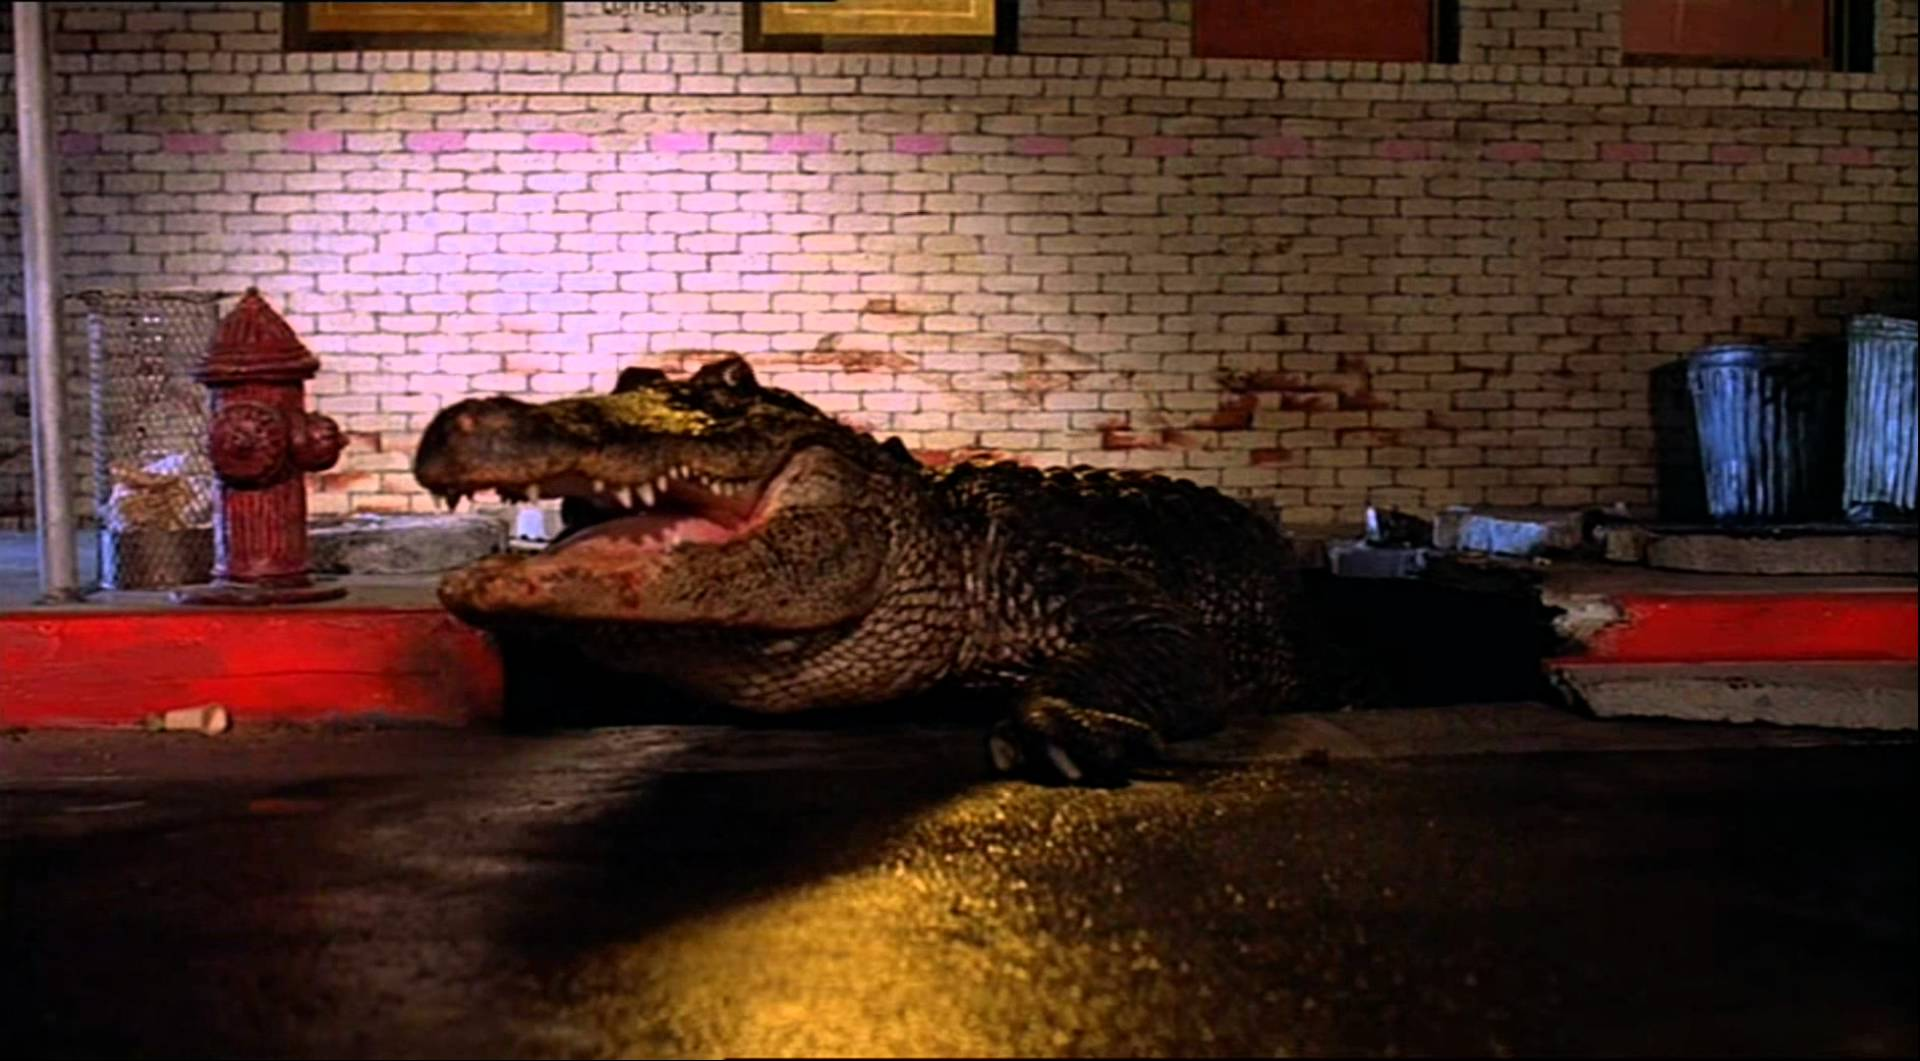 The alligator emerges from the sewers in Alligator (1980)